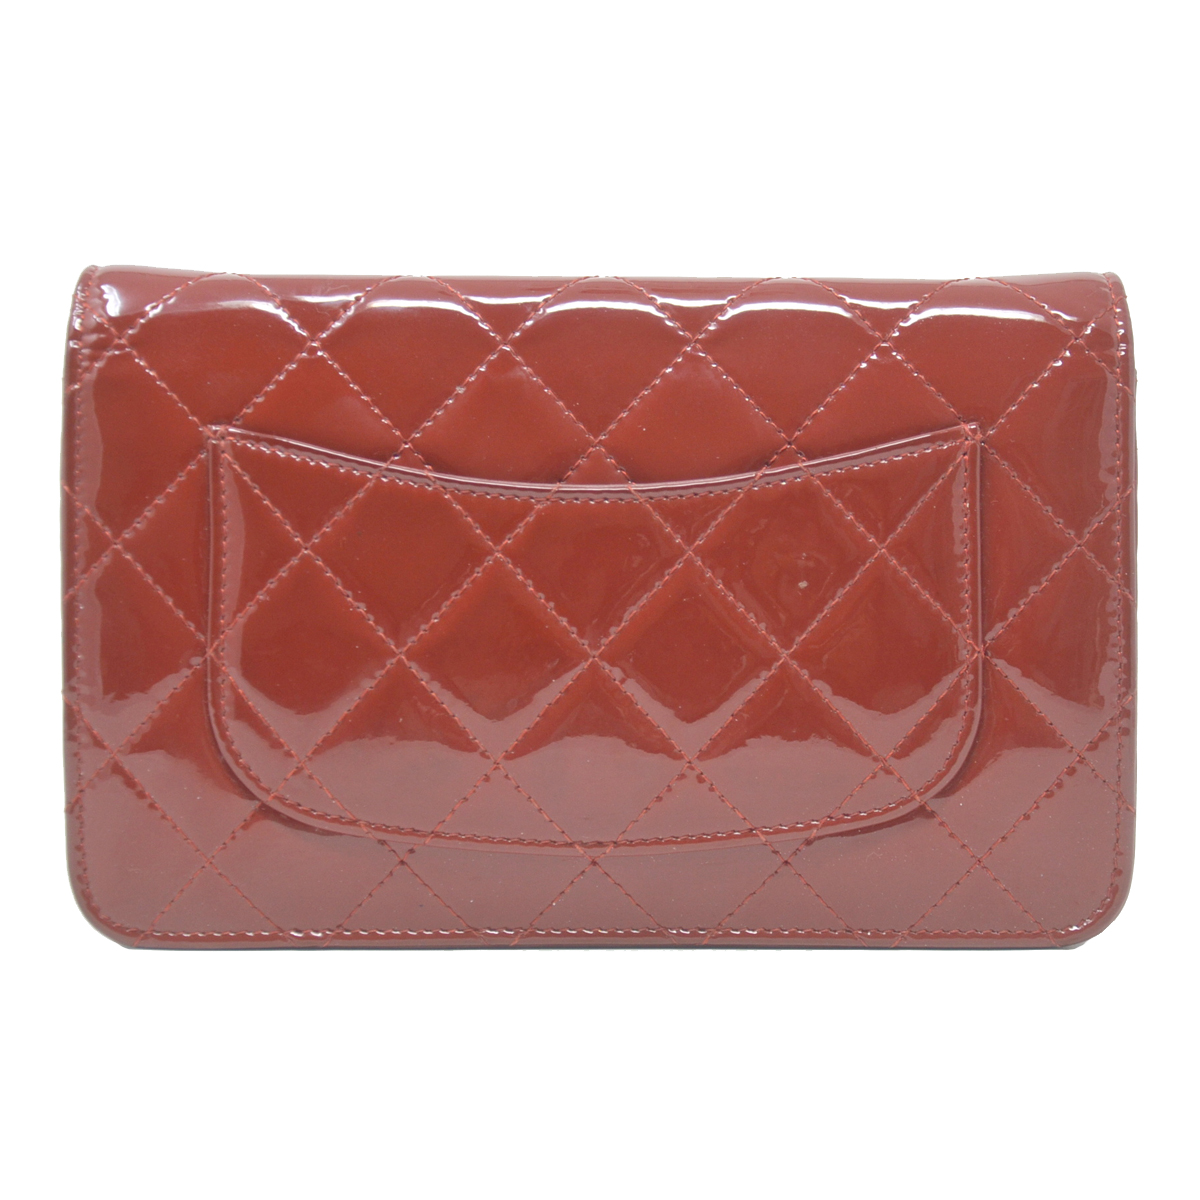 Chanel WOC Red Quilted Patent Leather Clutch Shoulder Bag